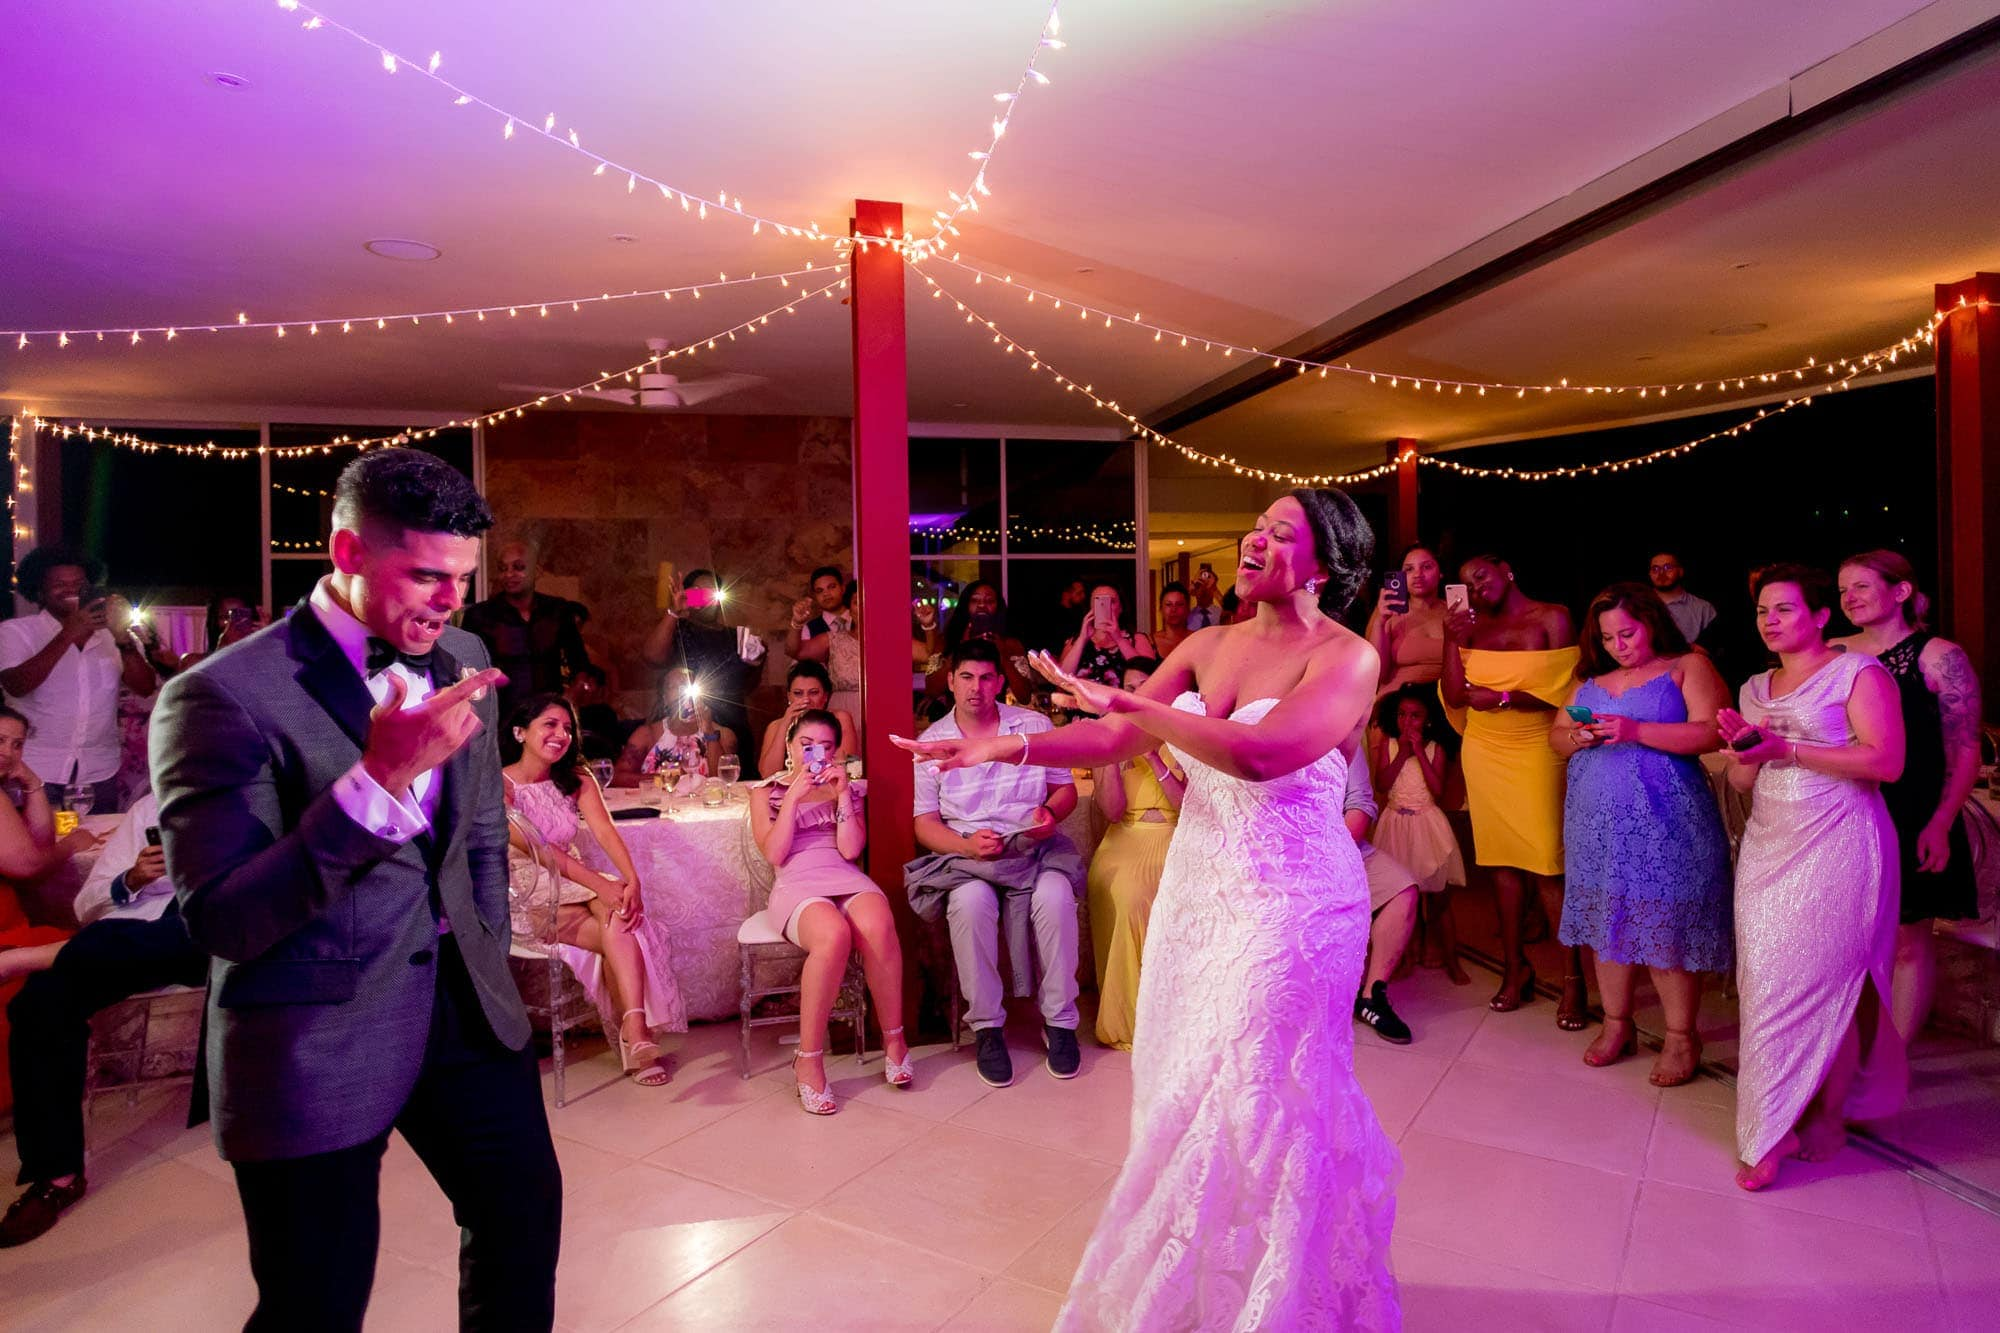 Best dance party ever! The bride and groom tearing it up